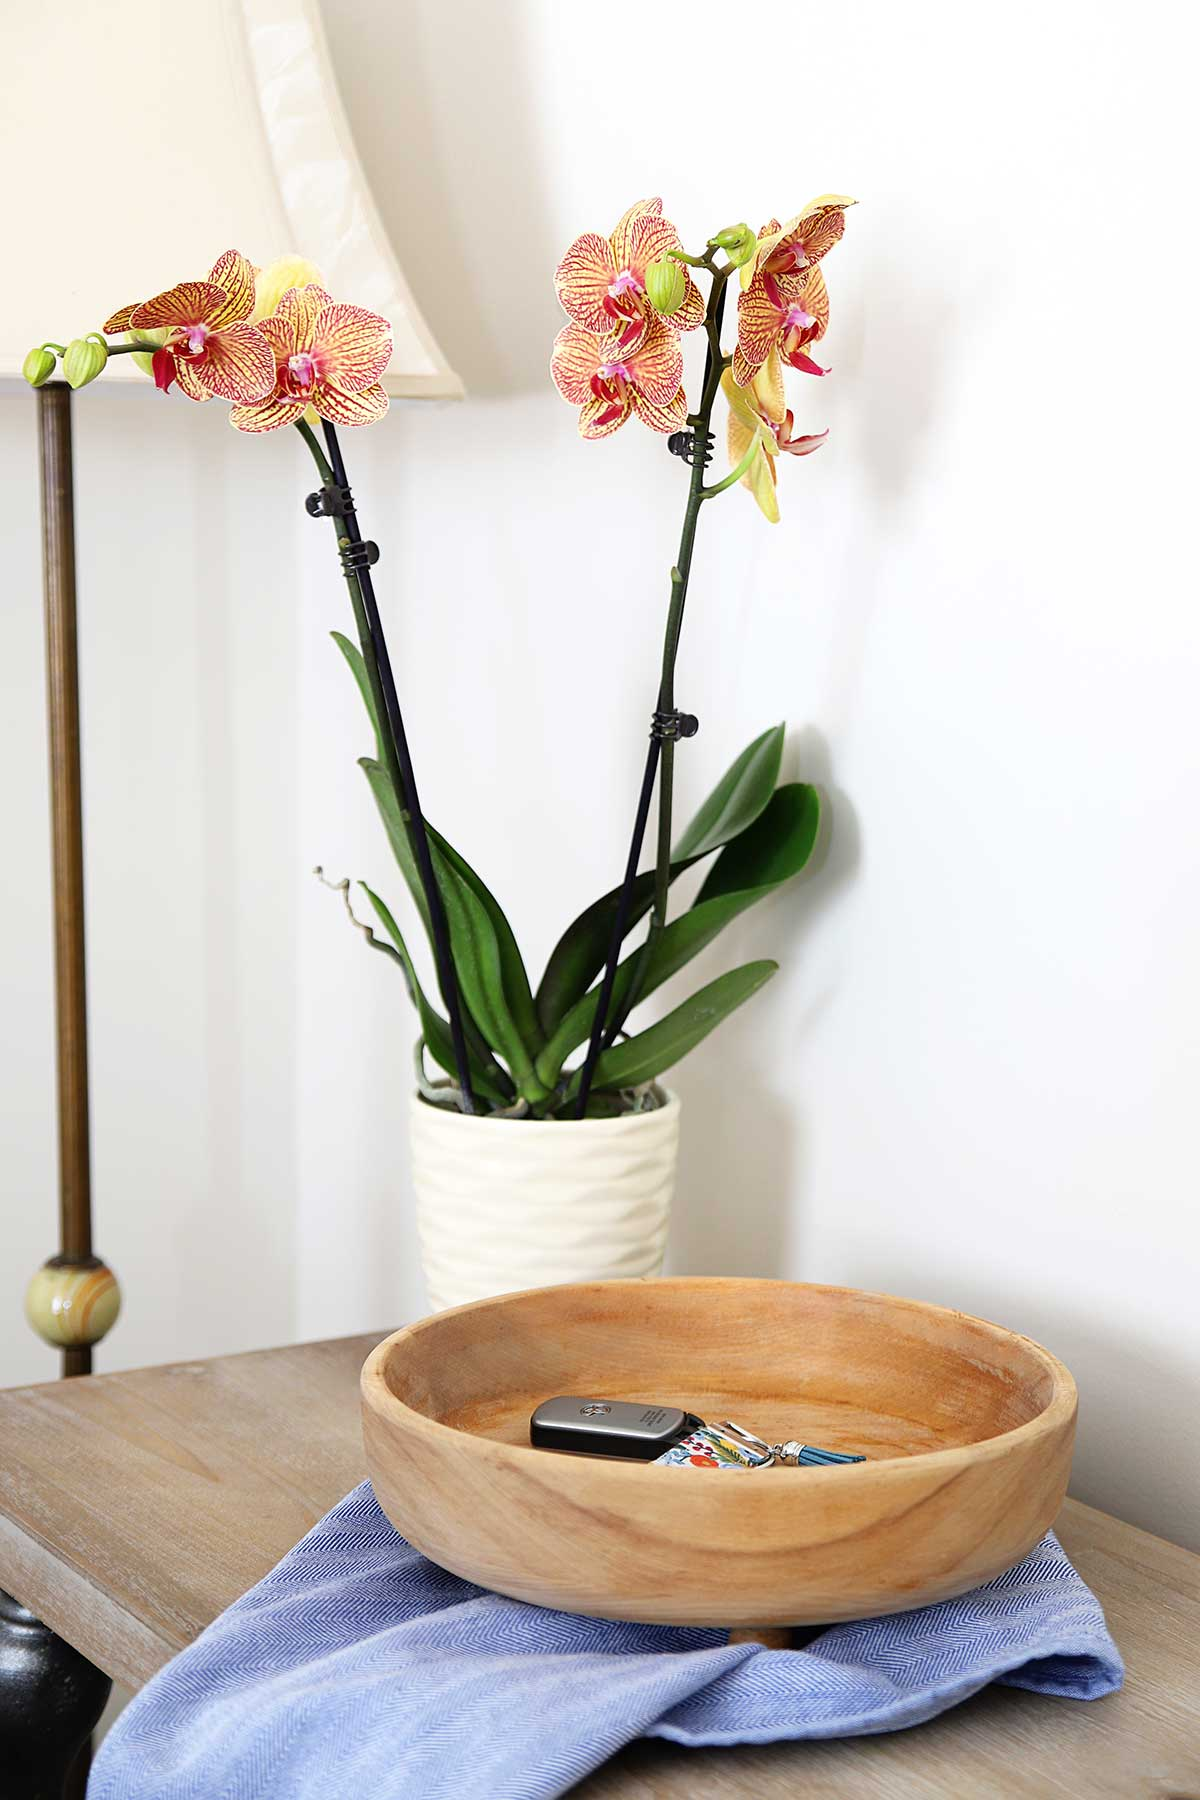 Bleached wooden bowl for farmhouse style sitting on counter with orchids